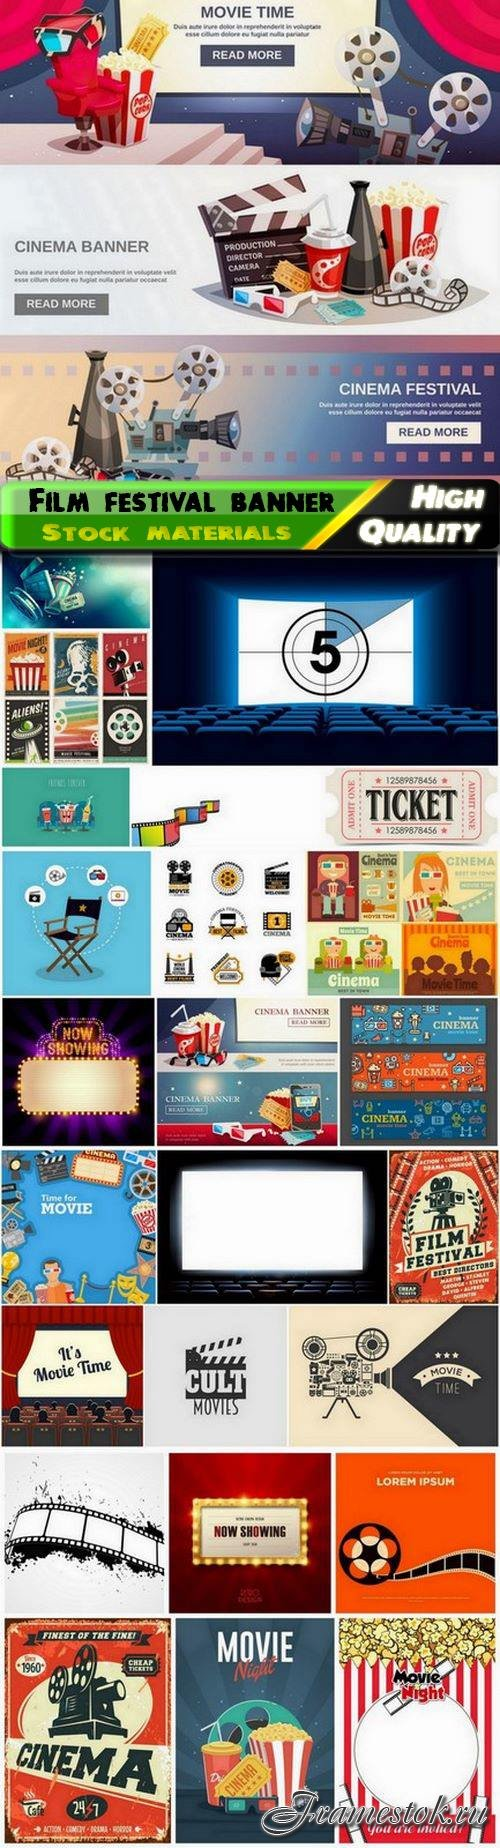 Cinema movie and film festival banner 25 Eps